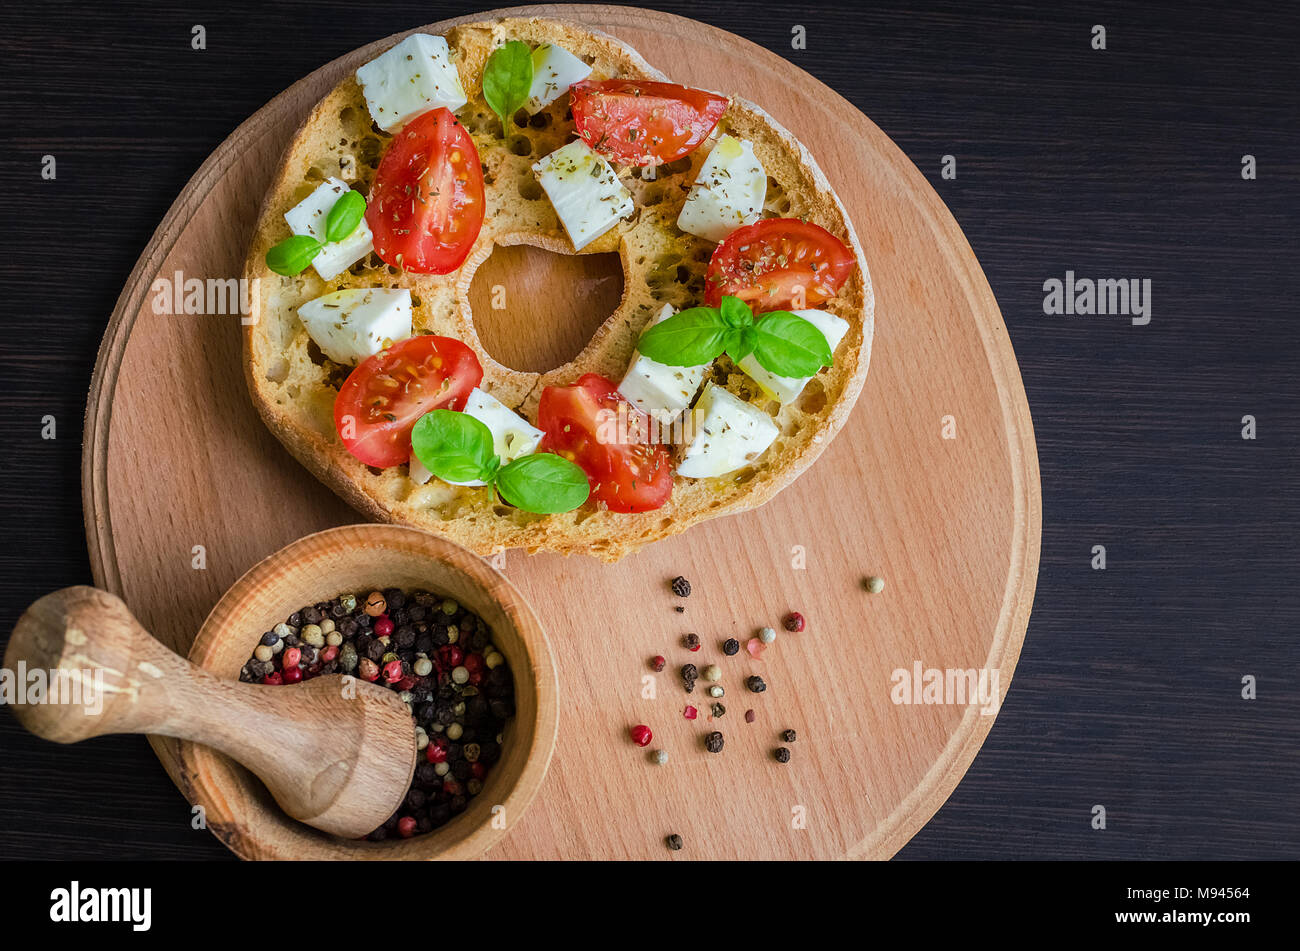 Classical frisella tomato, cheese mozzarella and basil. Italian starter friselle. Dried bread called freselle on wooden board. Italian food. Healthy v - Stock Image